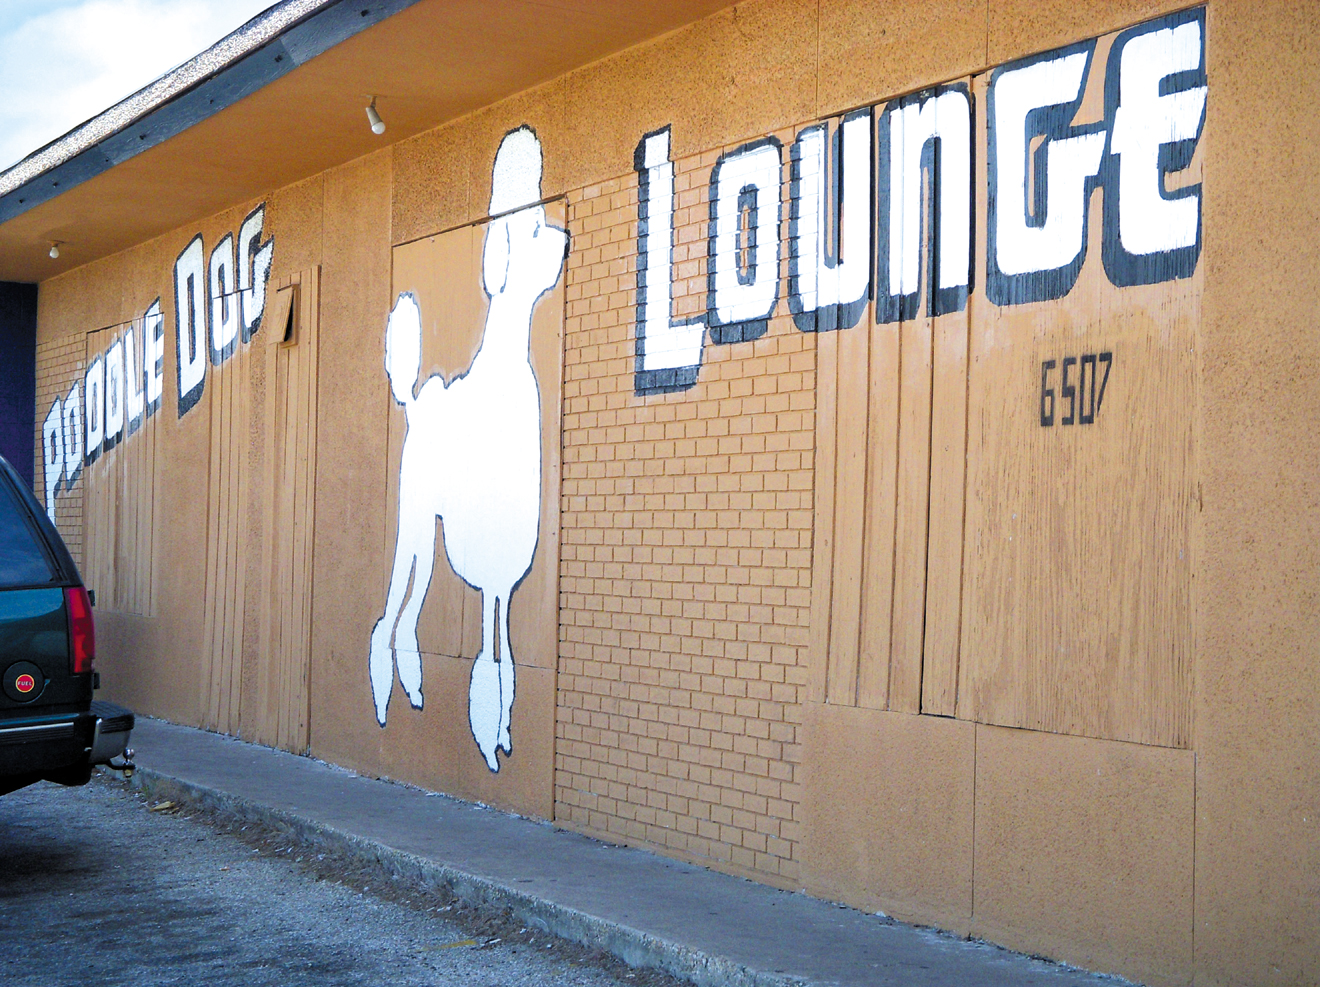 The Poodle Dog Lounge was used for a scene in Richard Linklater's 1993 film 'Dazed and Confused.'  Fort Worth Star-Telegram